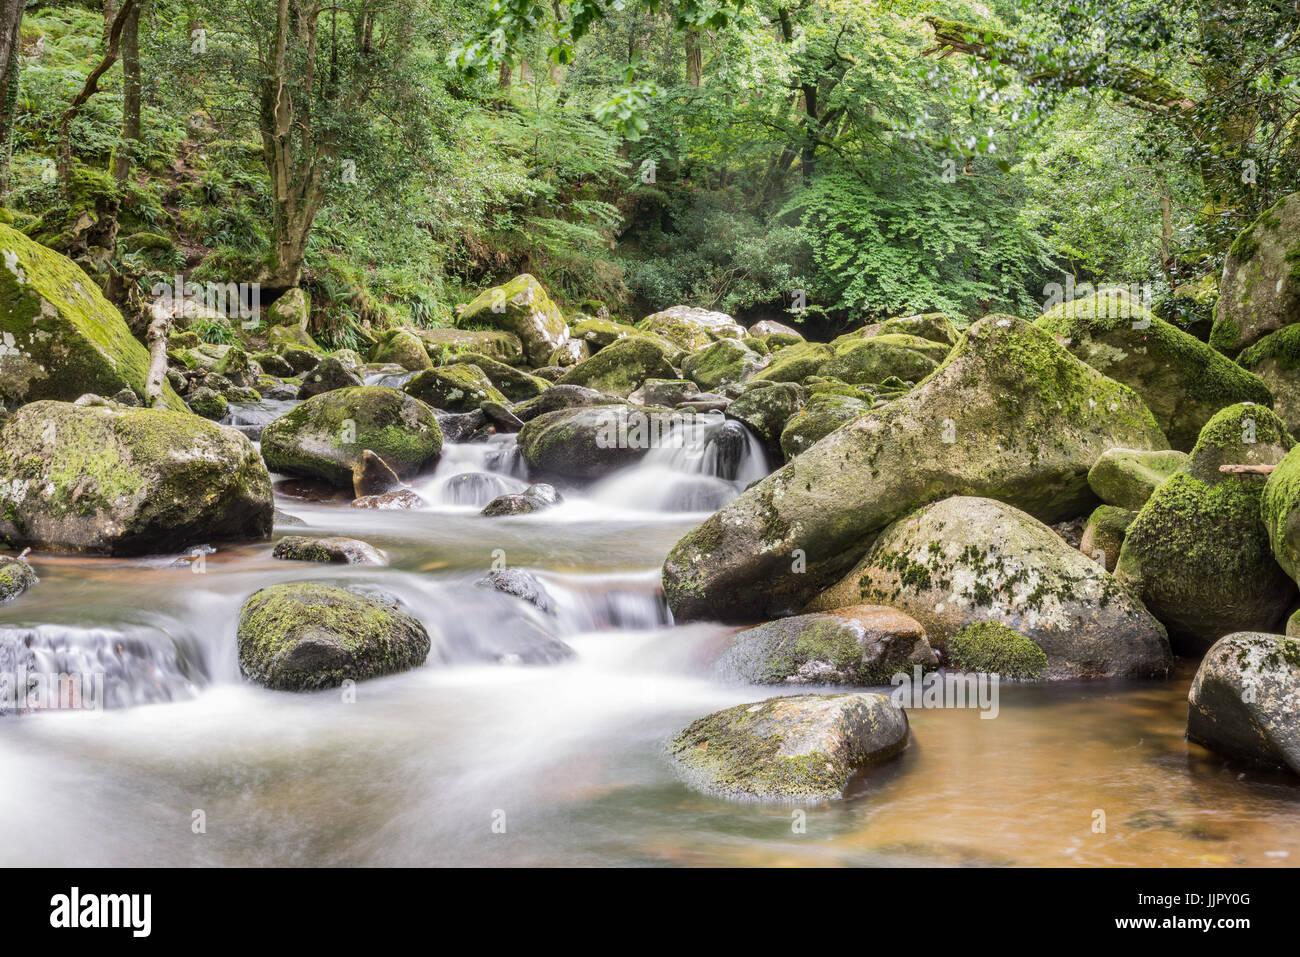 Long exposure photo of the River Plym in Devon - Stock Image